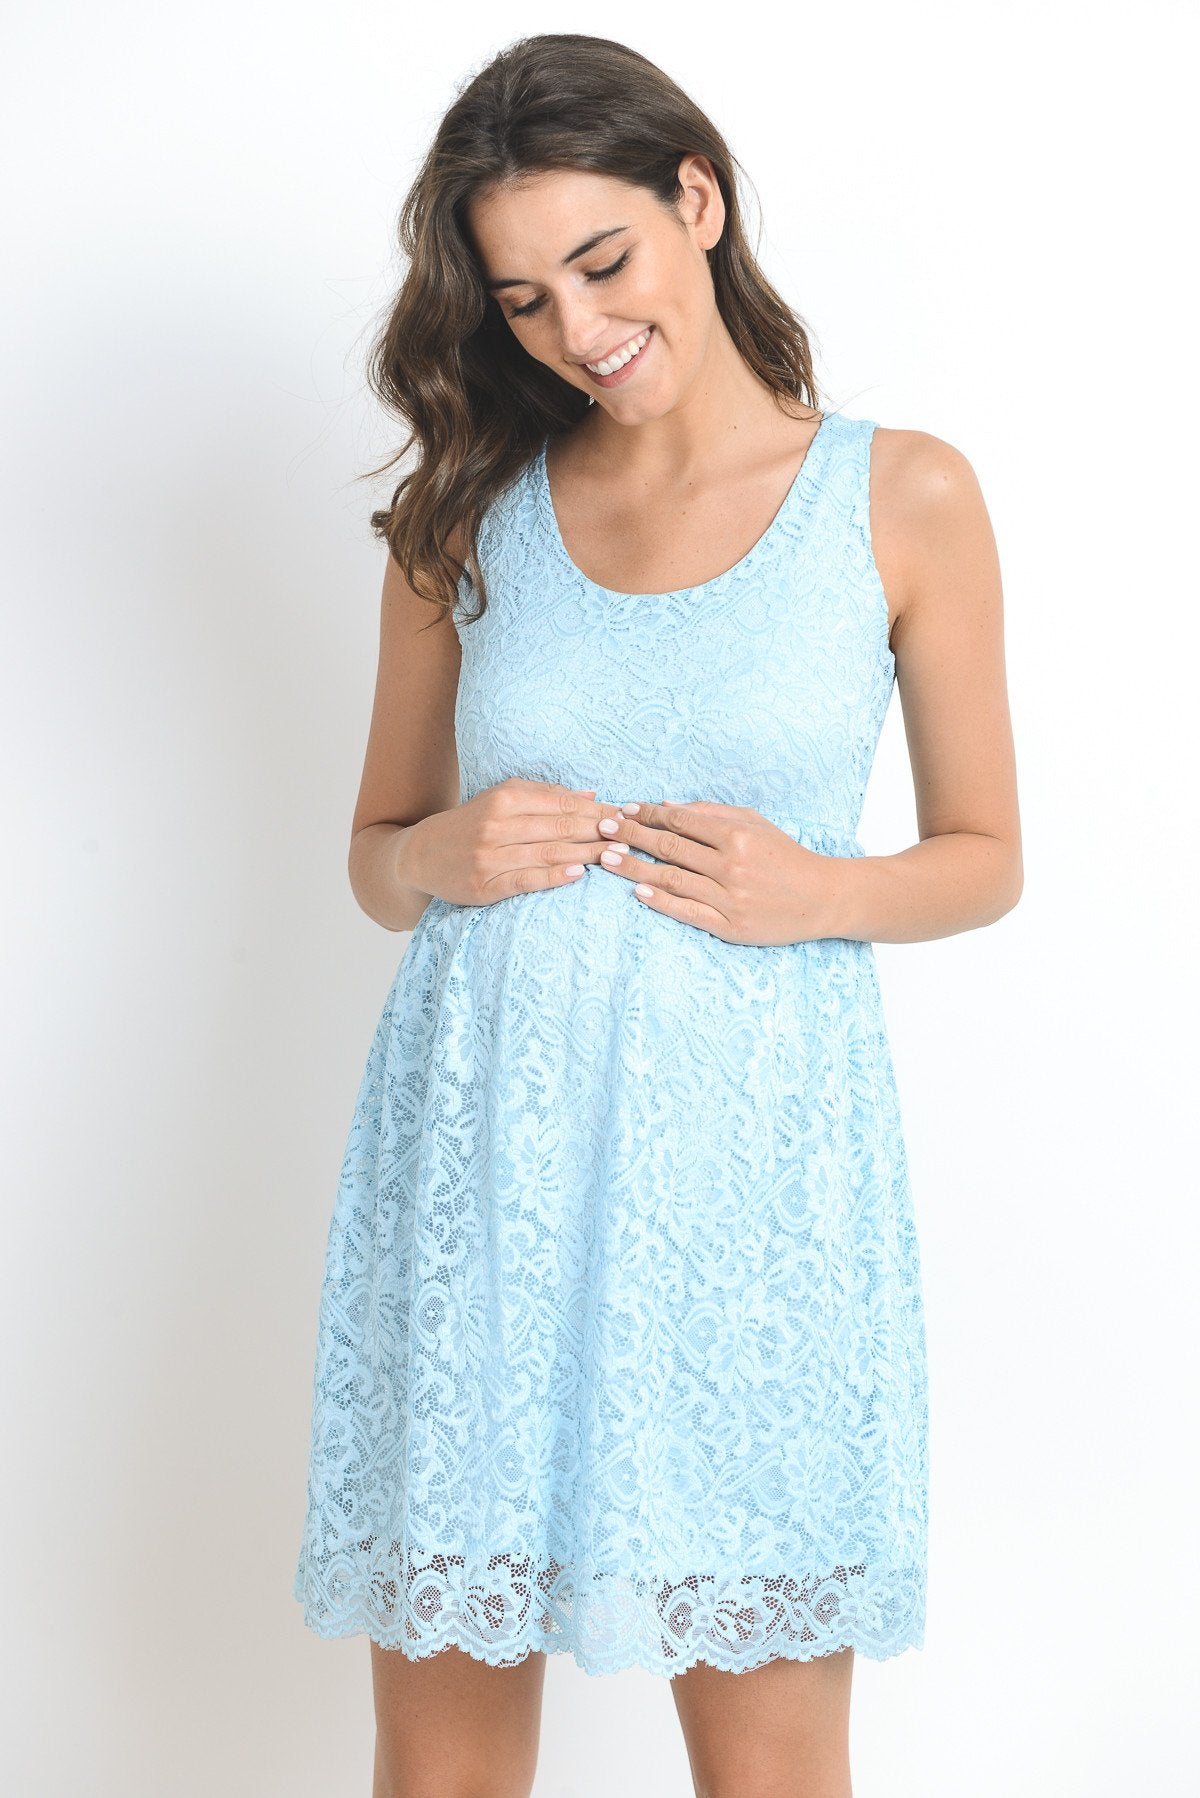 Scallop Lace Sleeveless Maternity Dress